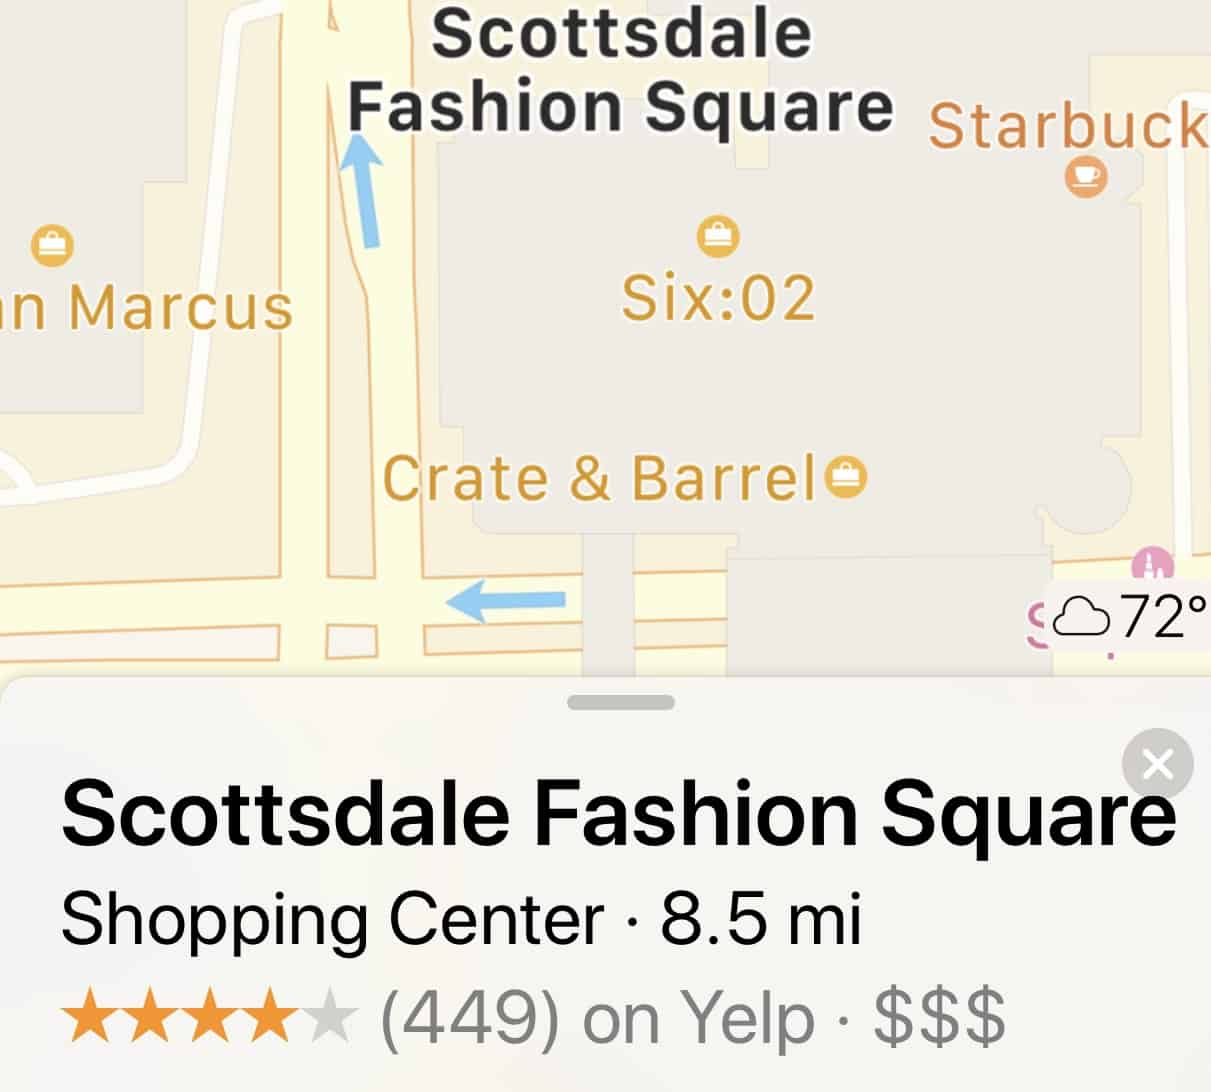 Holiday Road Trip Tips: Take a Trip, Travel Locally, GPS map to Scottsdale Fashion Square